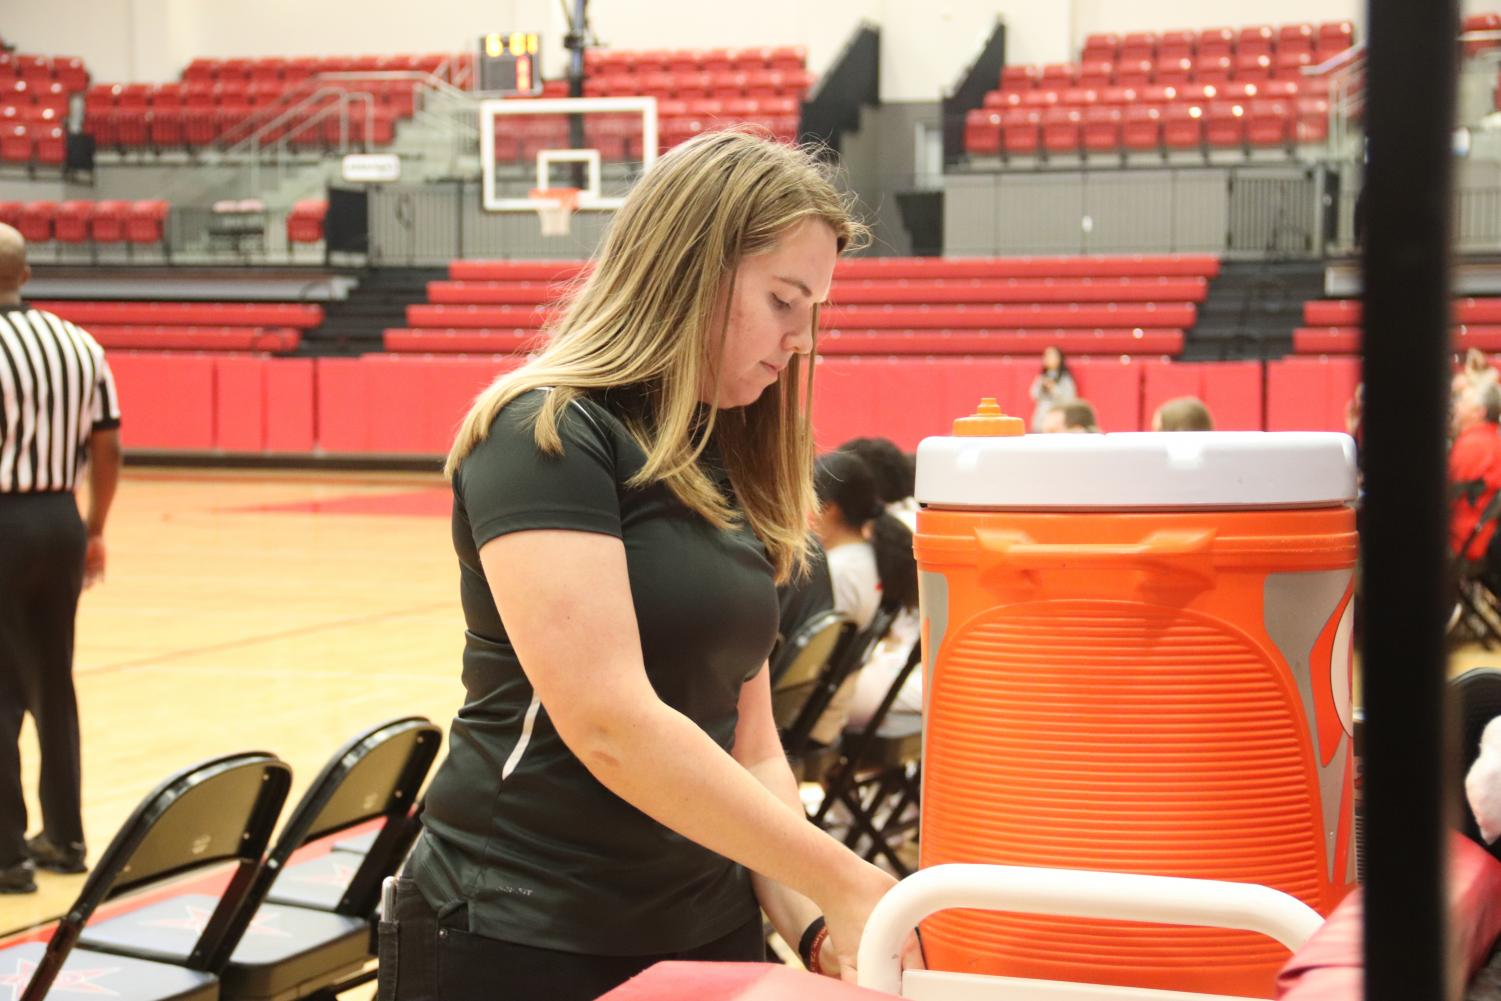 CHS/Coppell junior sports medicine trainer Taylor Evans fills water bottles for players at the varsity girls basketball game against Grapevine on Dec. 10 at the CHS Arena. Evans works exclusively with basketball during the winter season.